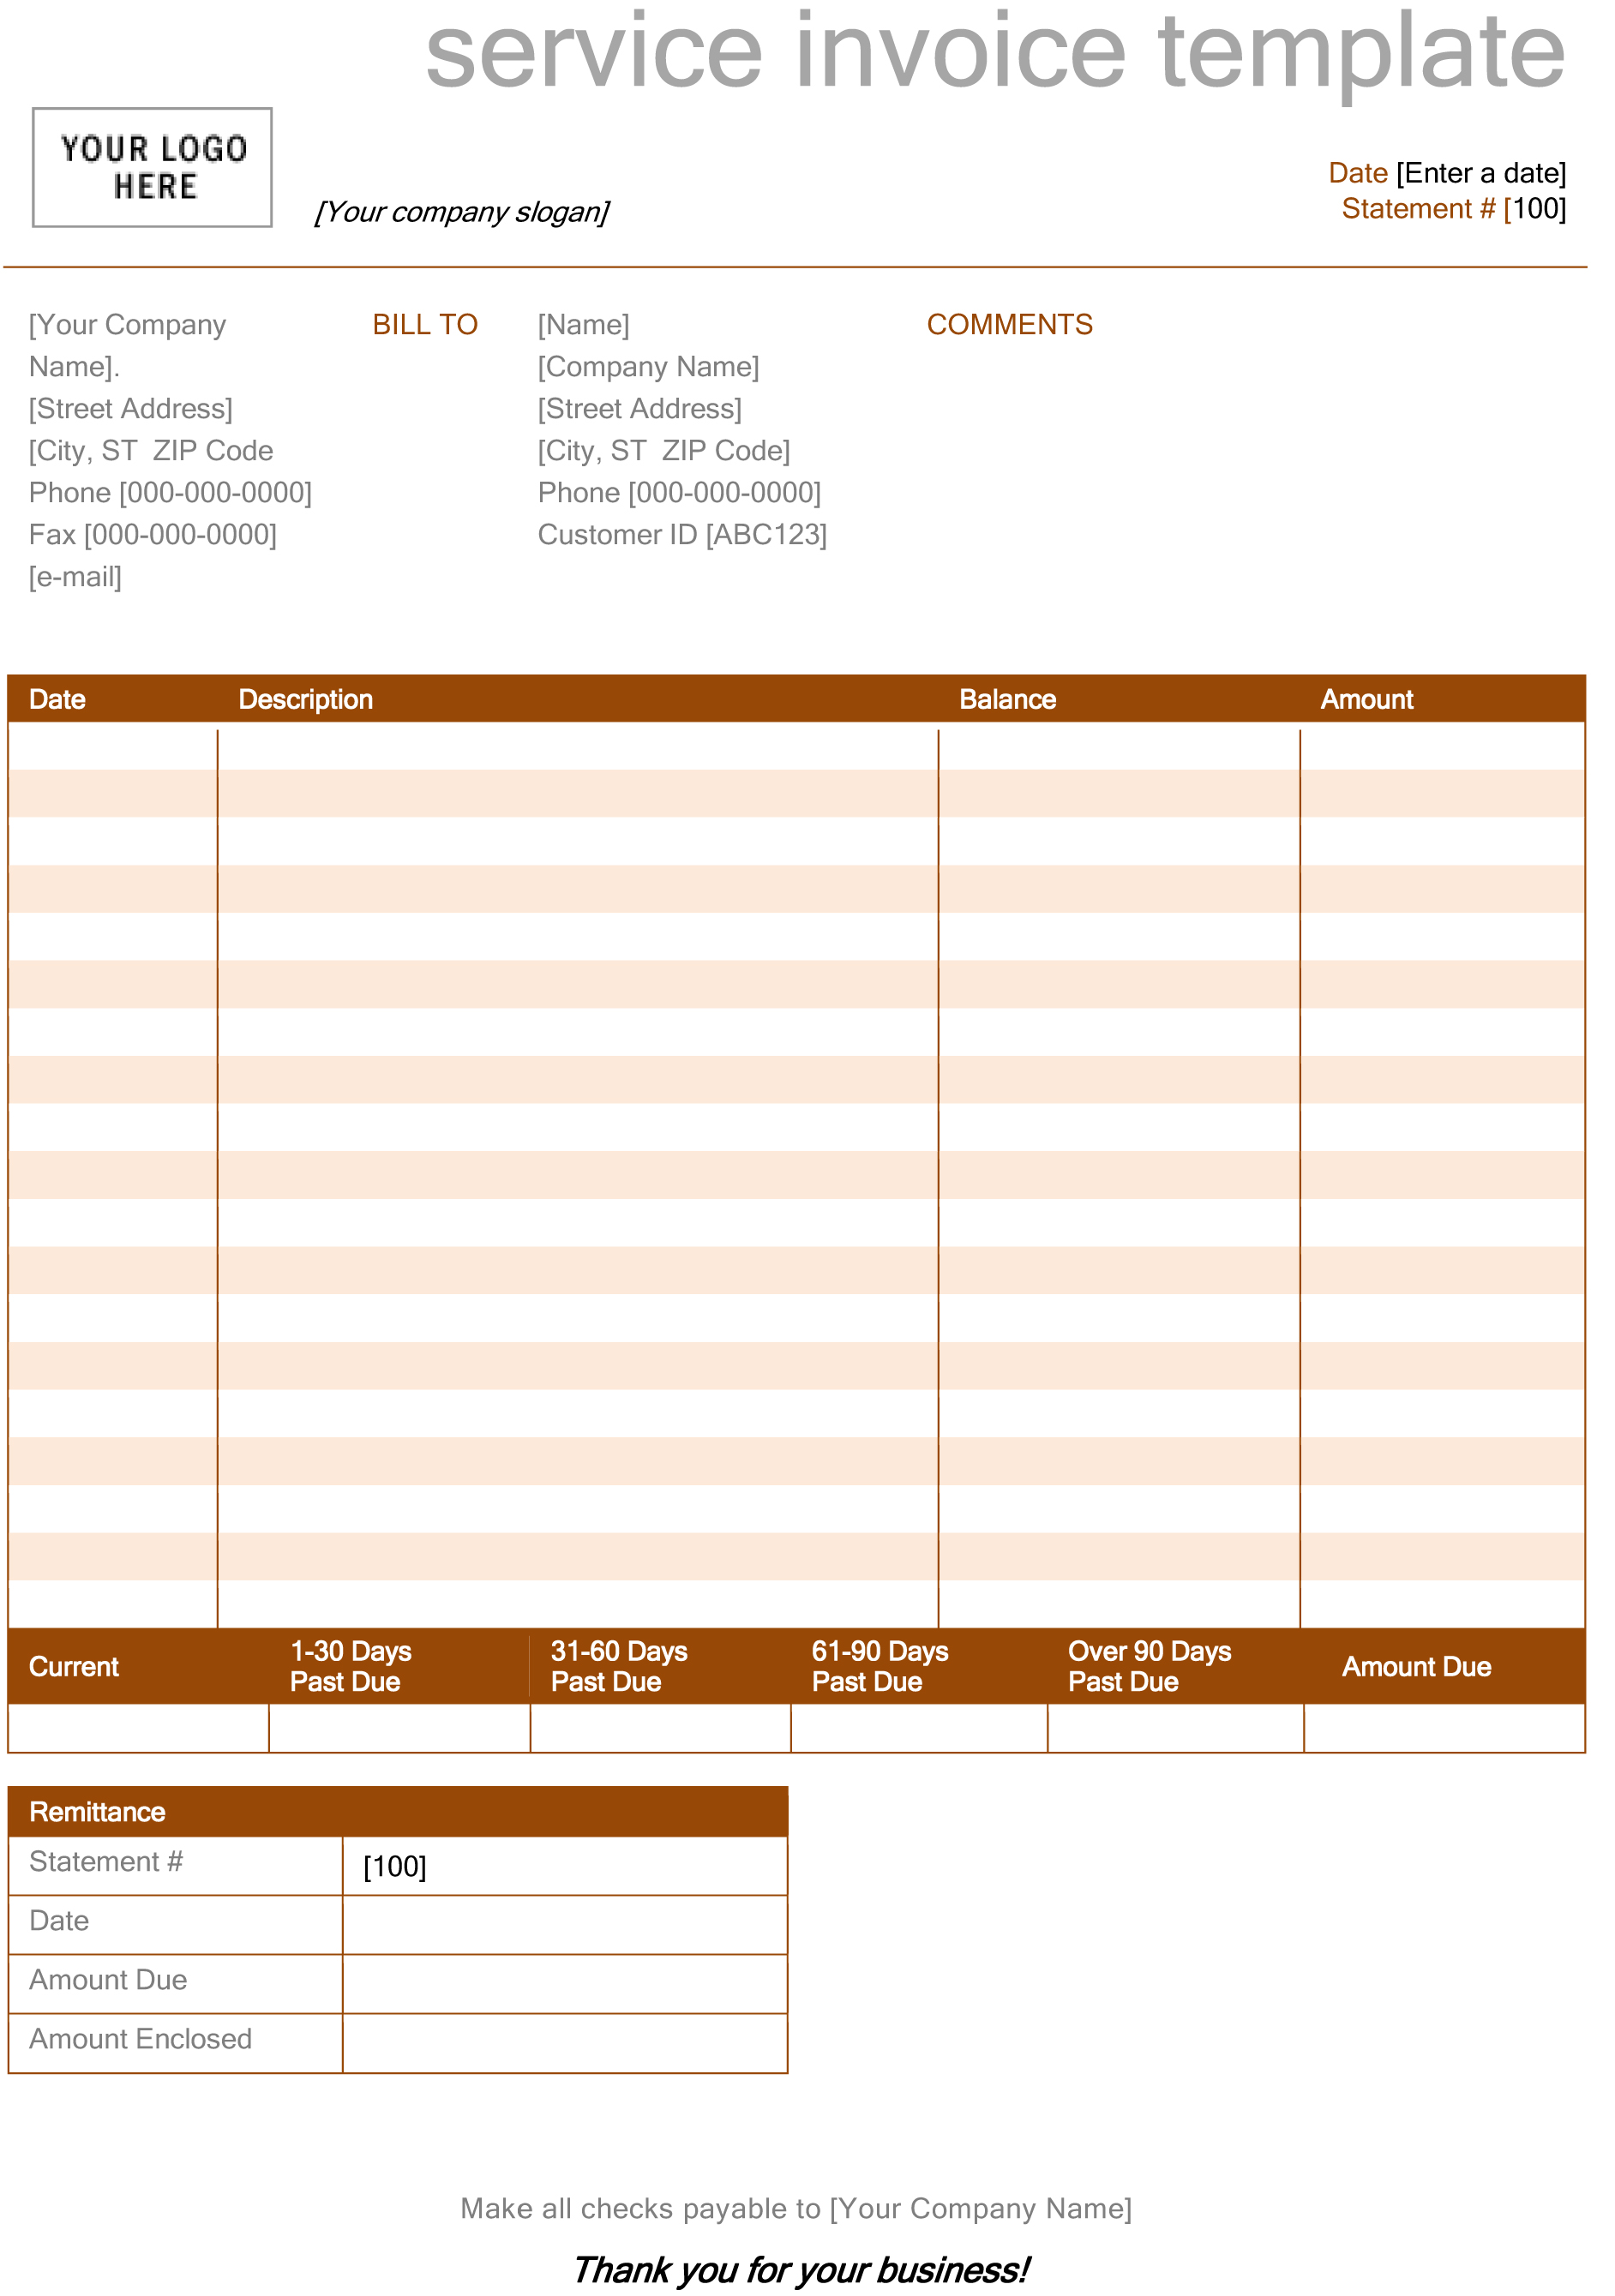 sample medical invoice invoice template ideas